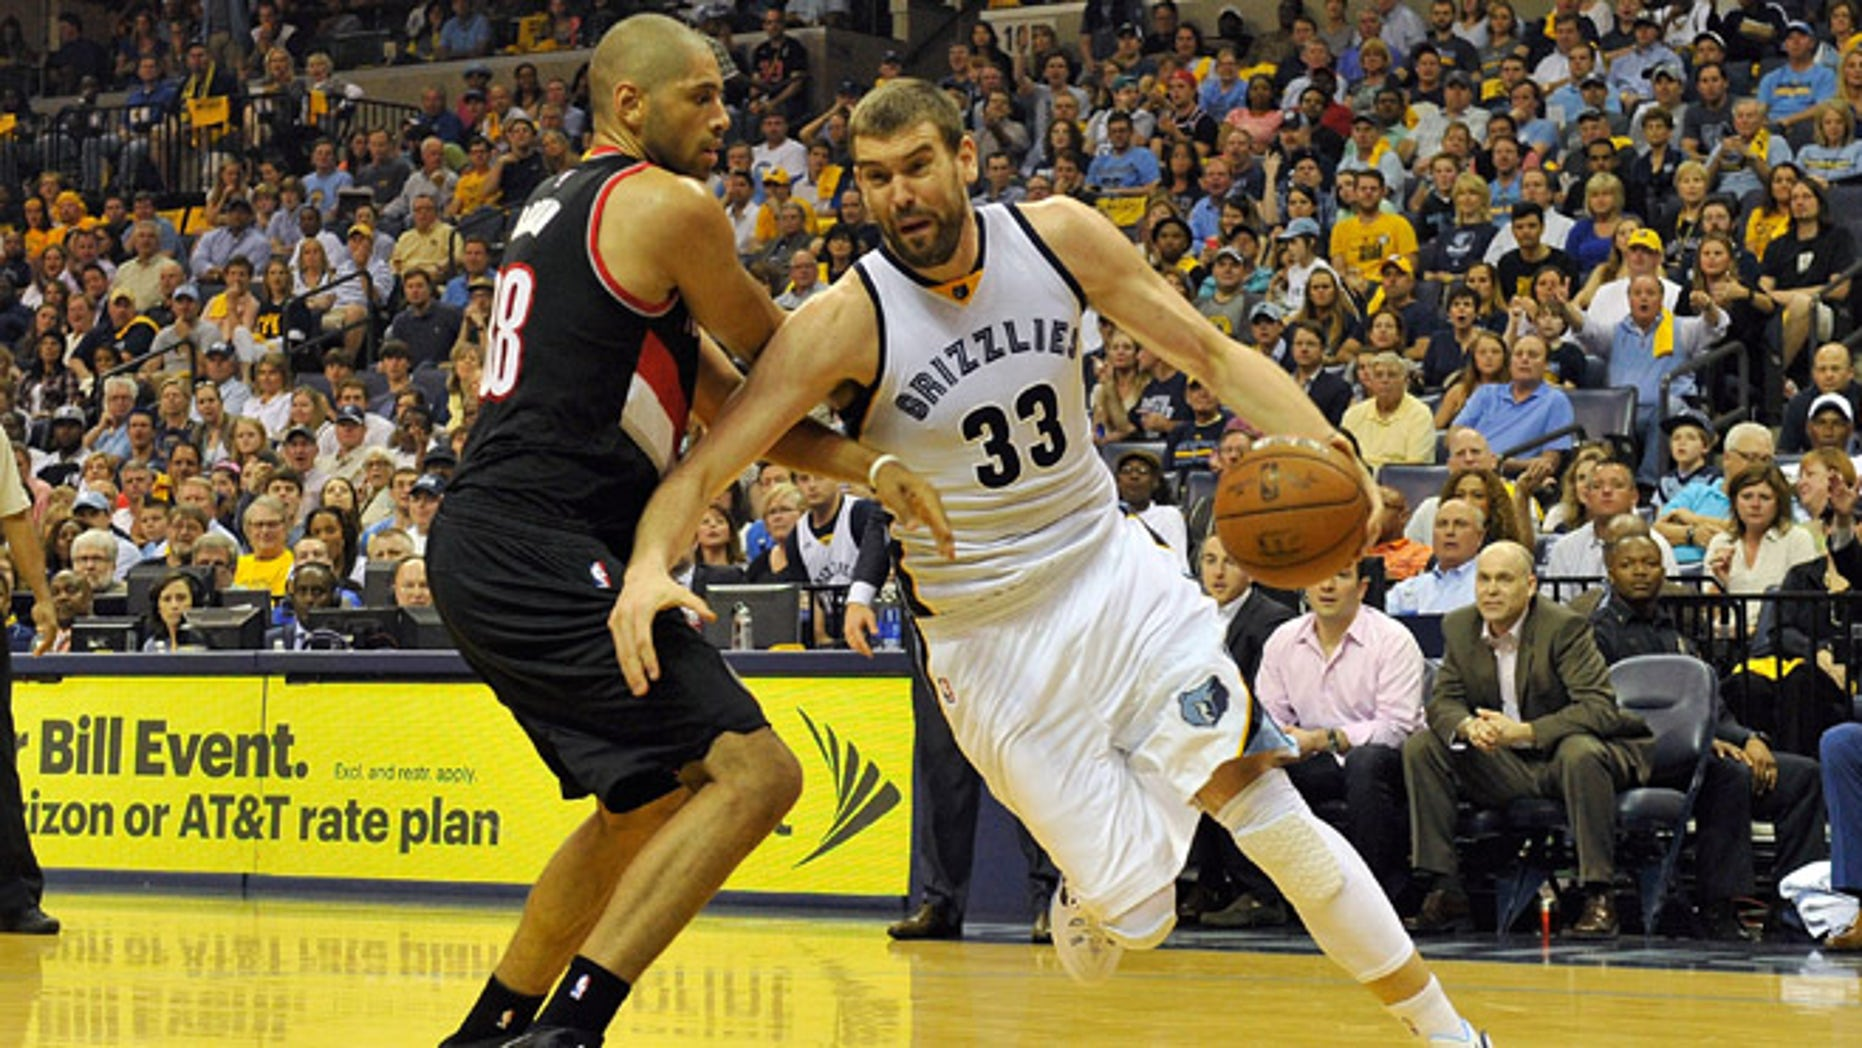 MEMPHIS, TN - APRIL 19:  Marc Gasol #33 of the Memphis Grizzlies drives past Nicolas Batum #88 of the Portland Trailblazers in the second quarter of Game One of the first round of the 2015 NBA Playoffs at FedExForum on April 19, 2015 in Memphis, Tennessee. NOTE TO USER: User expressly acknowledges and agrees that, by downloading and/or using this photograph, user is consenting to the terms and conditions of the Getty Images License Agreement.  (Photo by Frederick Breedon/Getty Images)